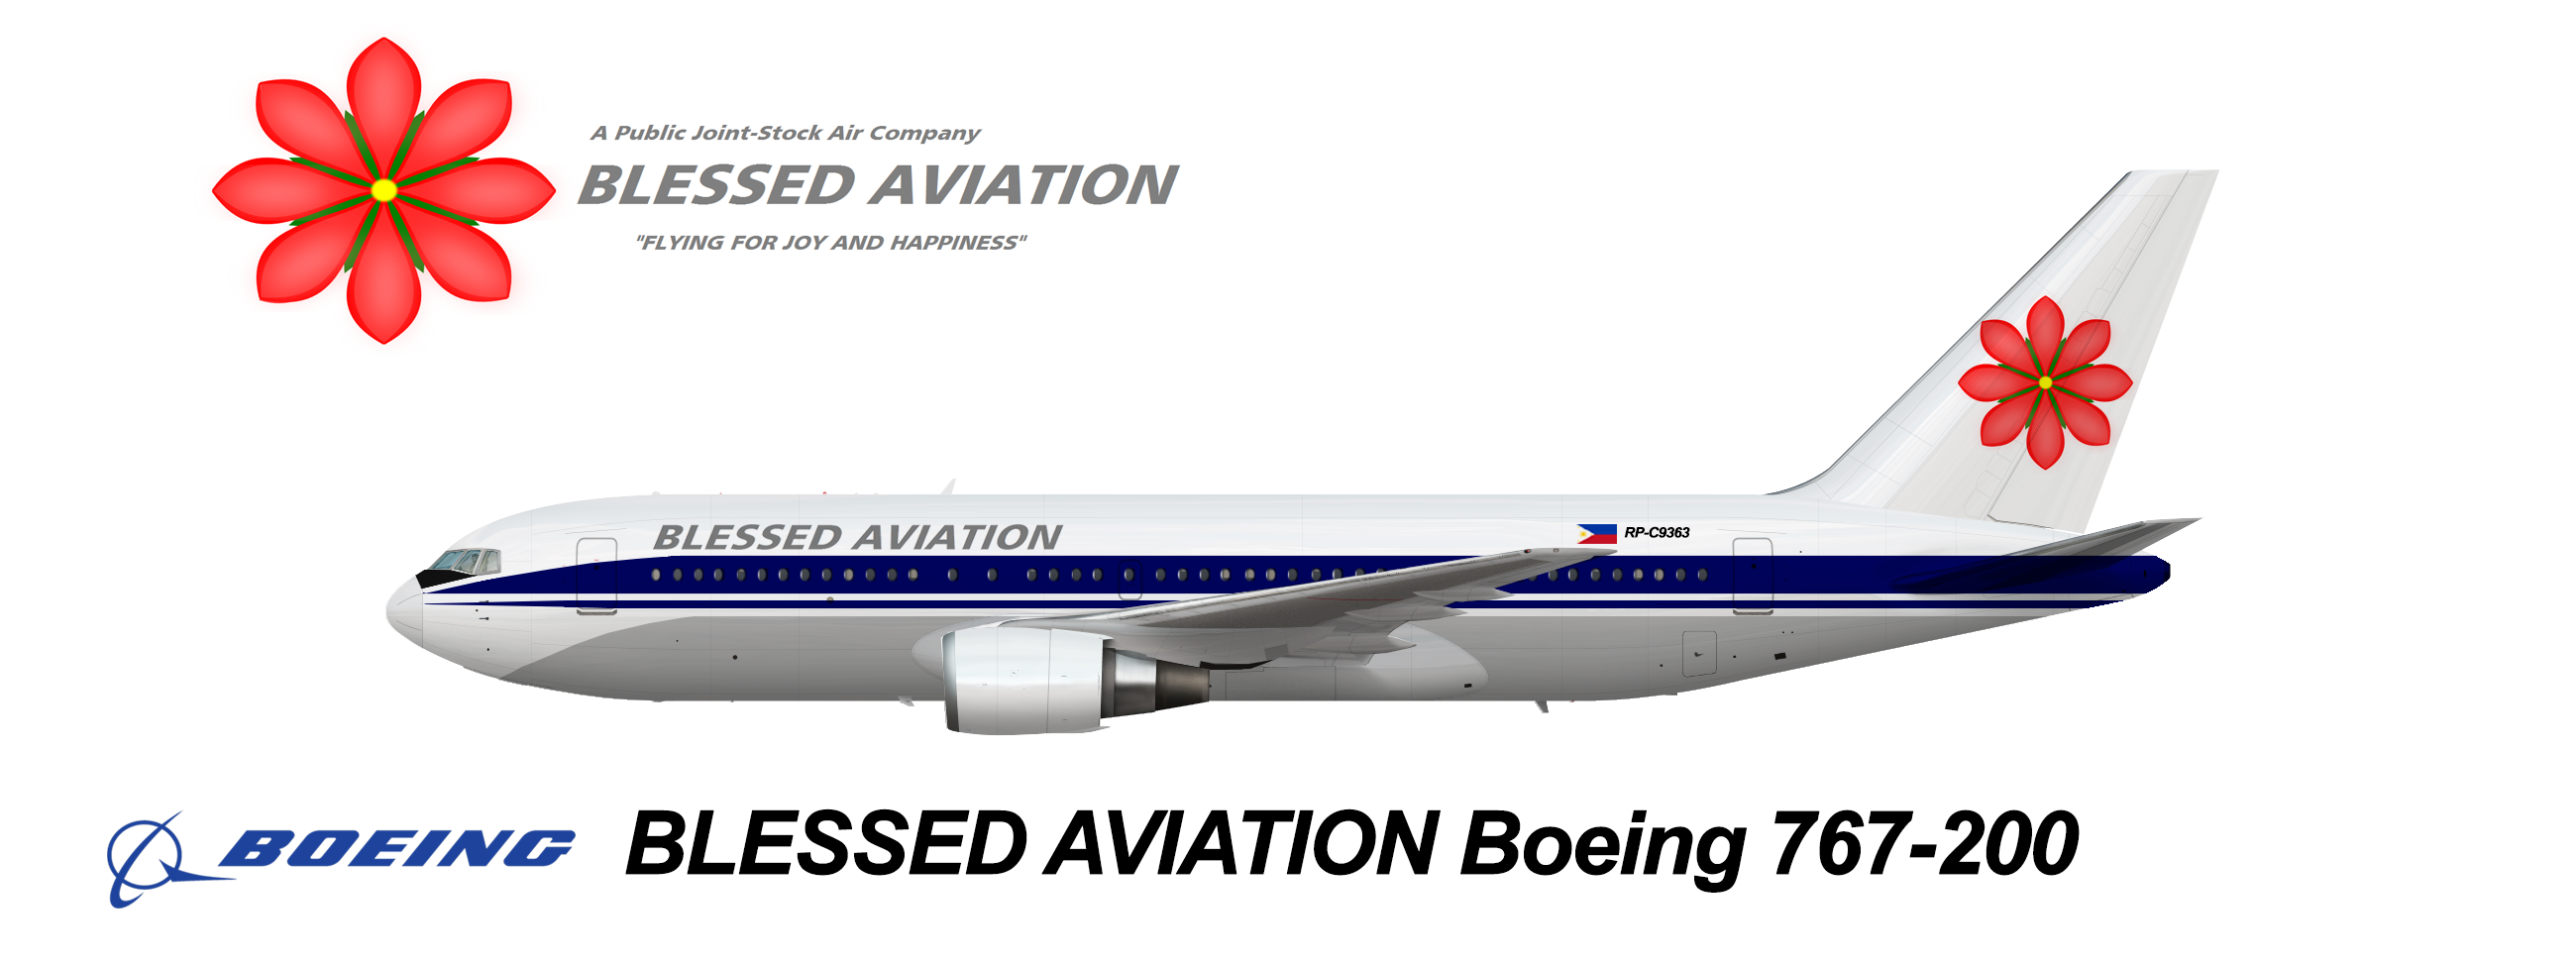 Blessed Aviation Boeing 767-200